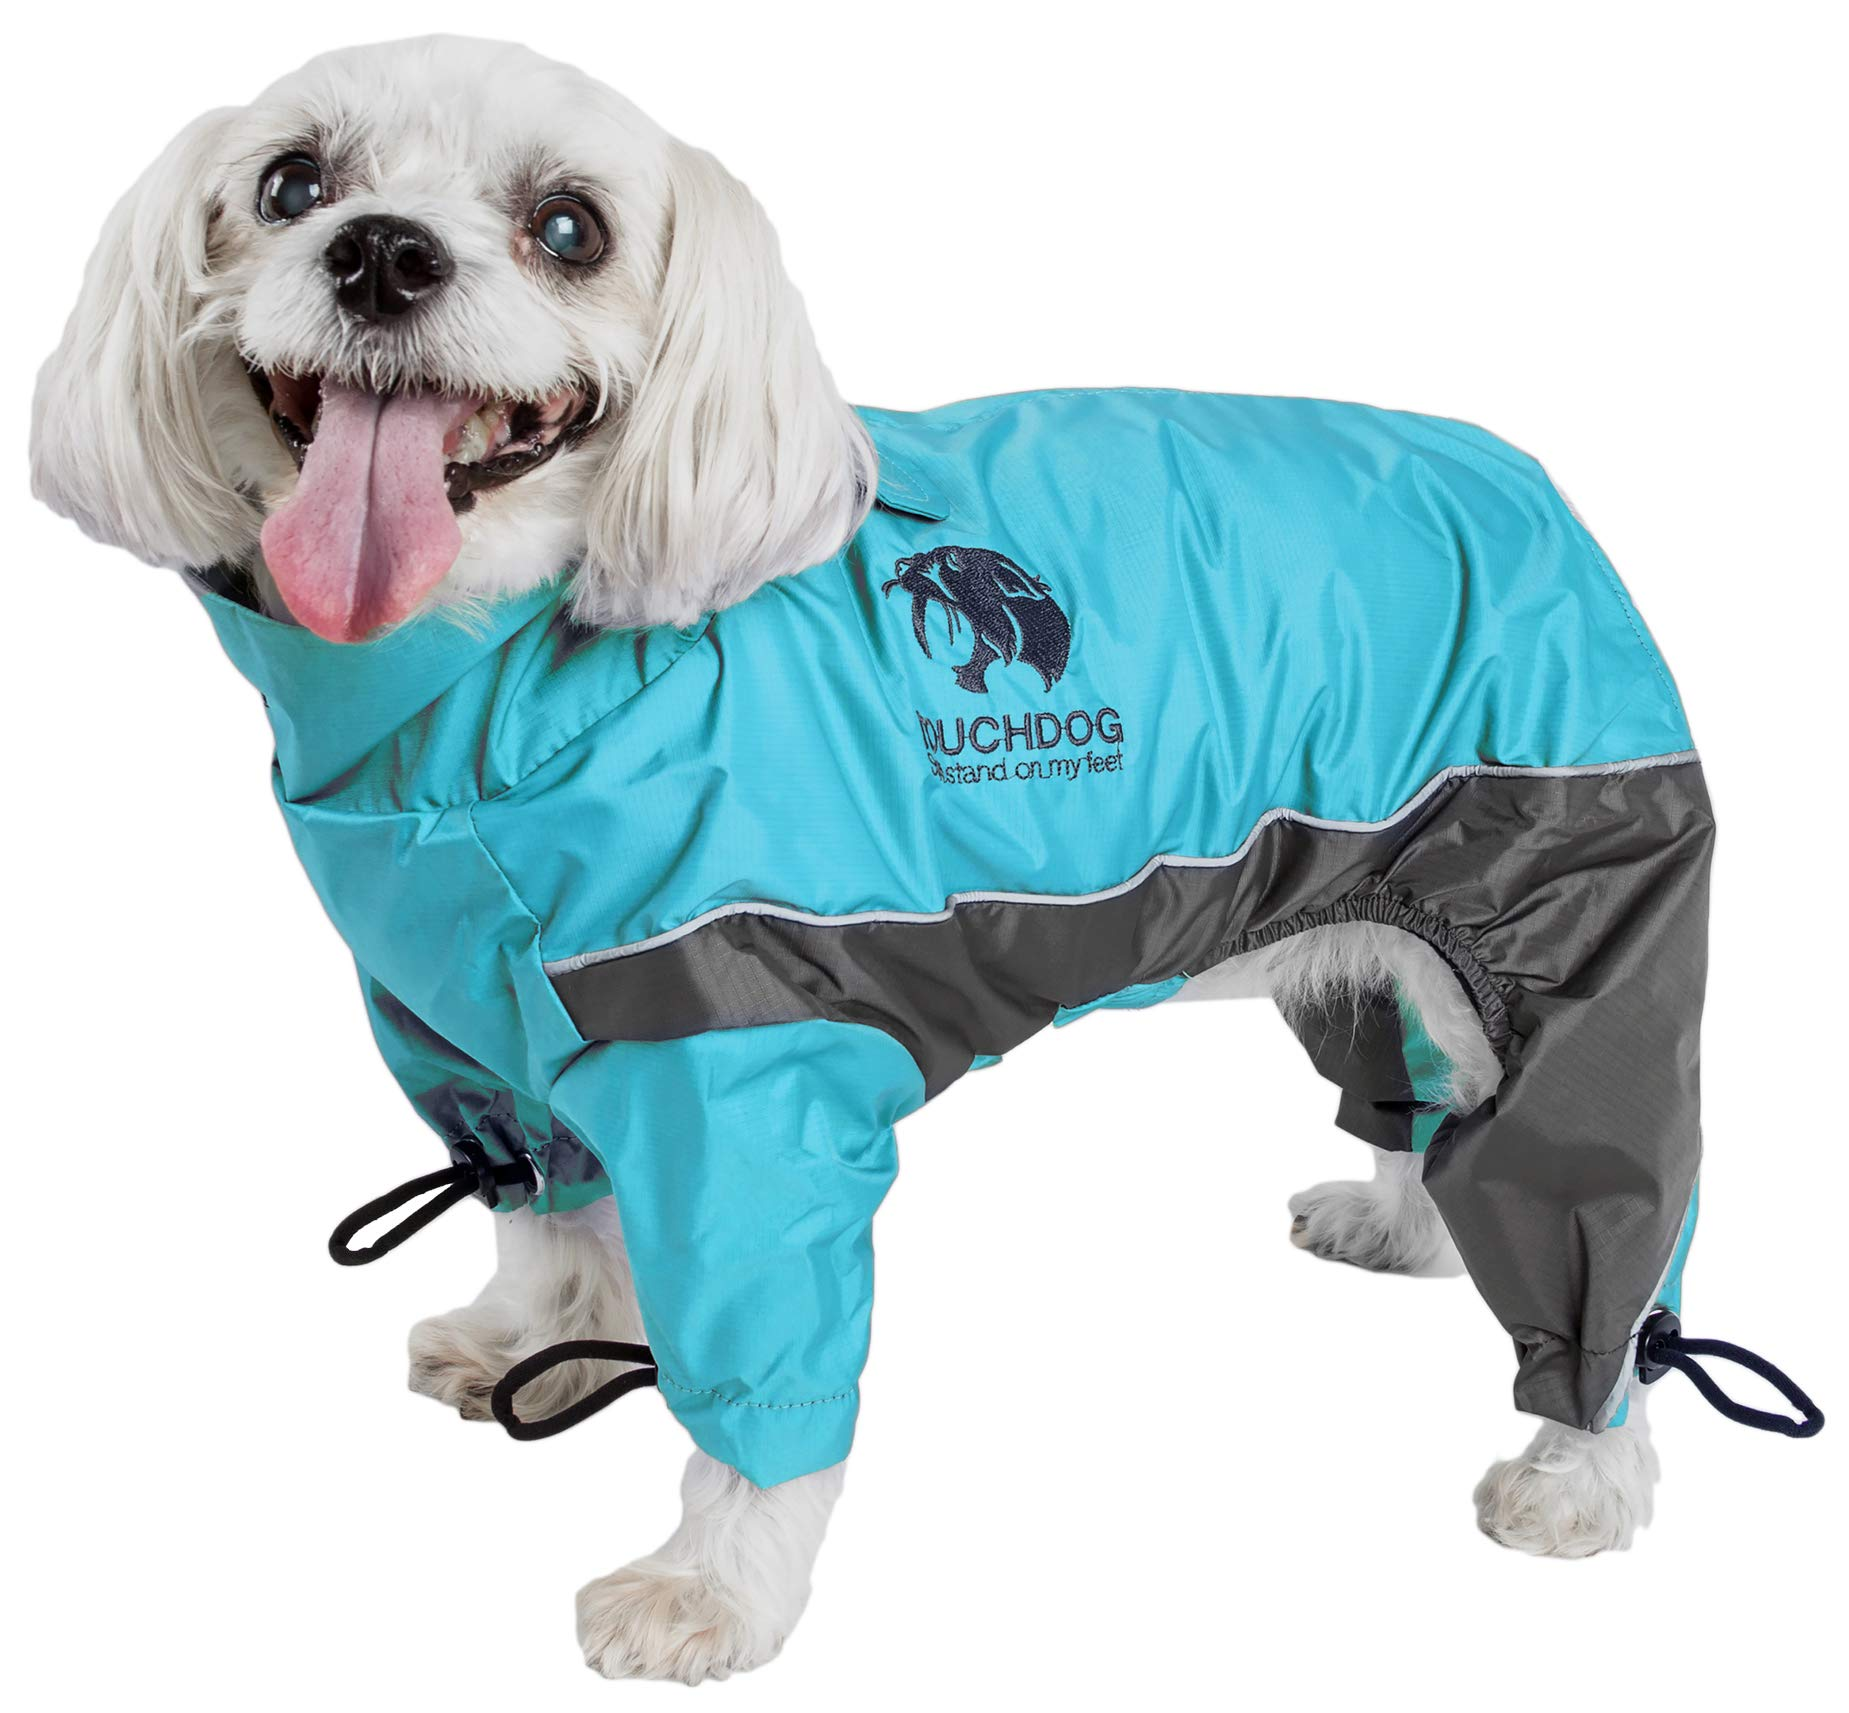 TOUCHDOG 'Quantum-Ice' Full Body Bodied Adjustable and 3M Reflective Pet Dog Coat Jacket w/ Blackshark Technology, Small, Ocean Blue, Grey